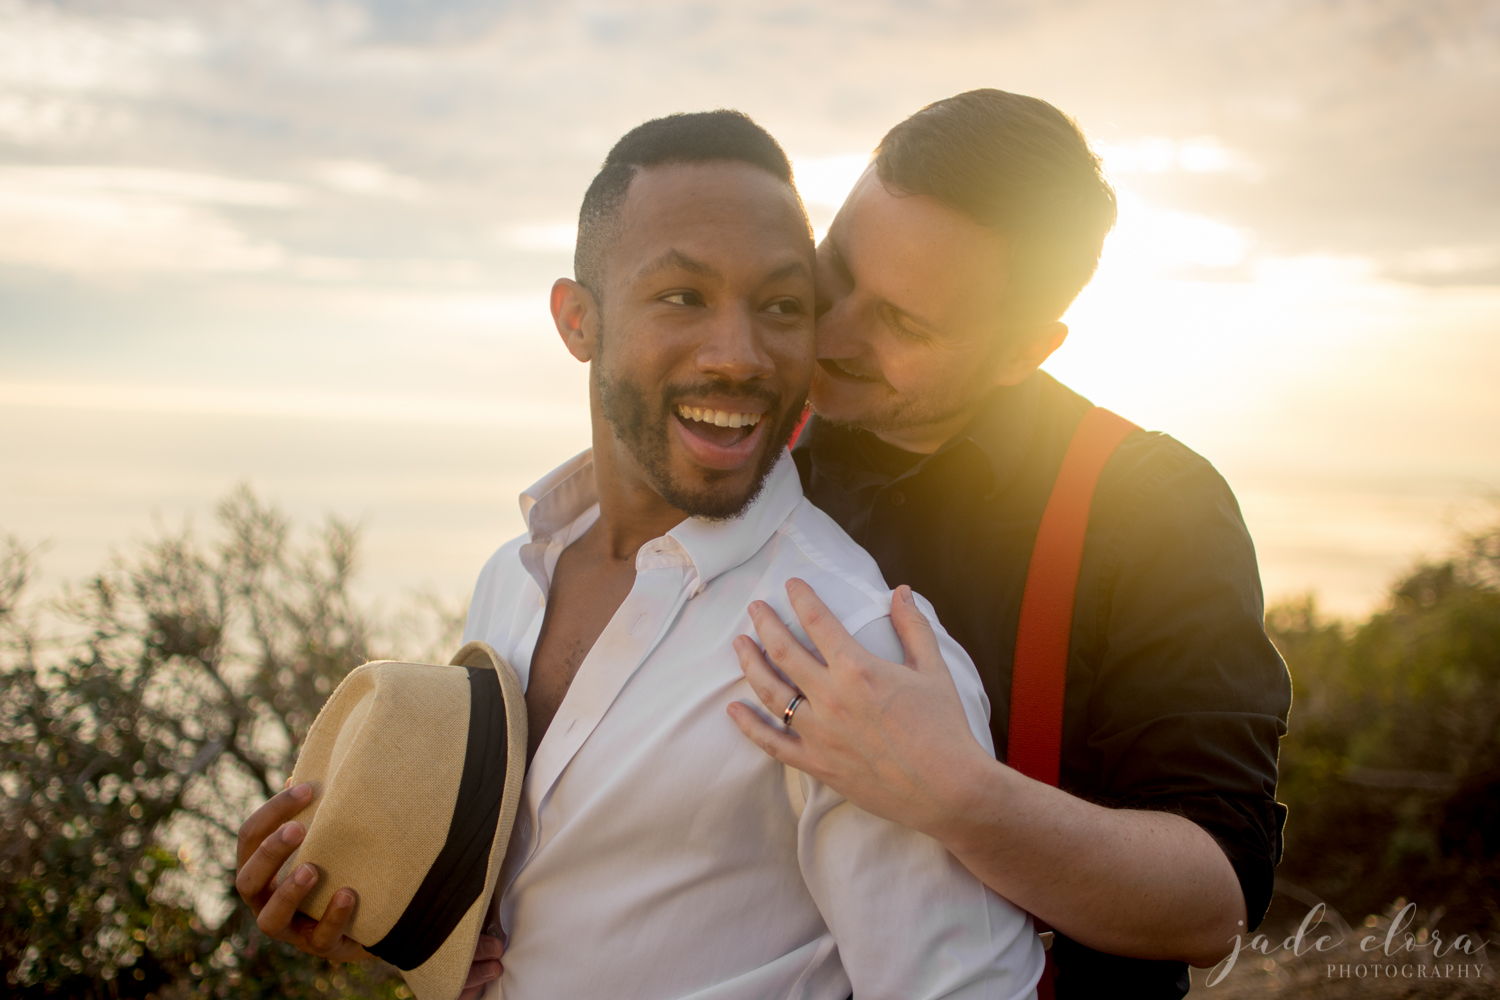 Intimate photo of gay male couple laughing on beach